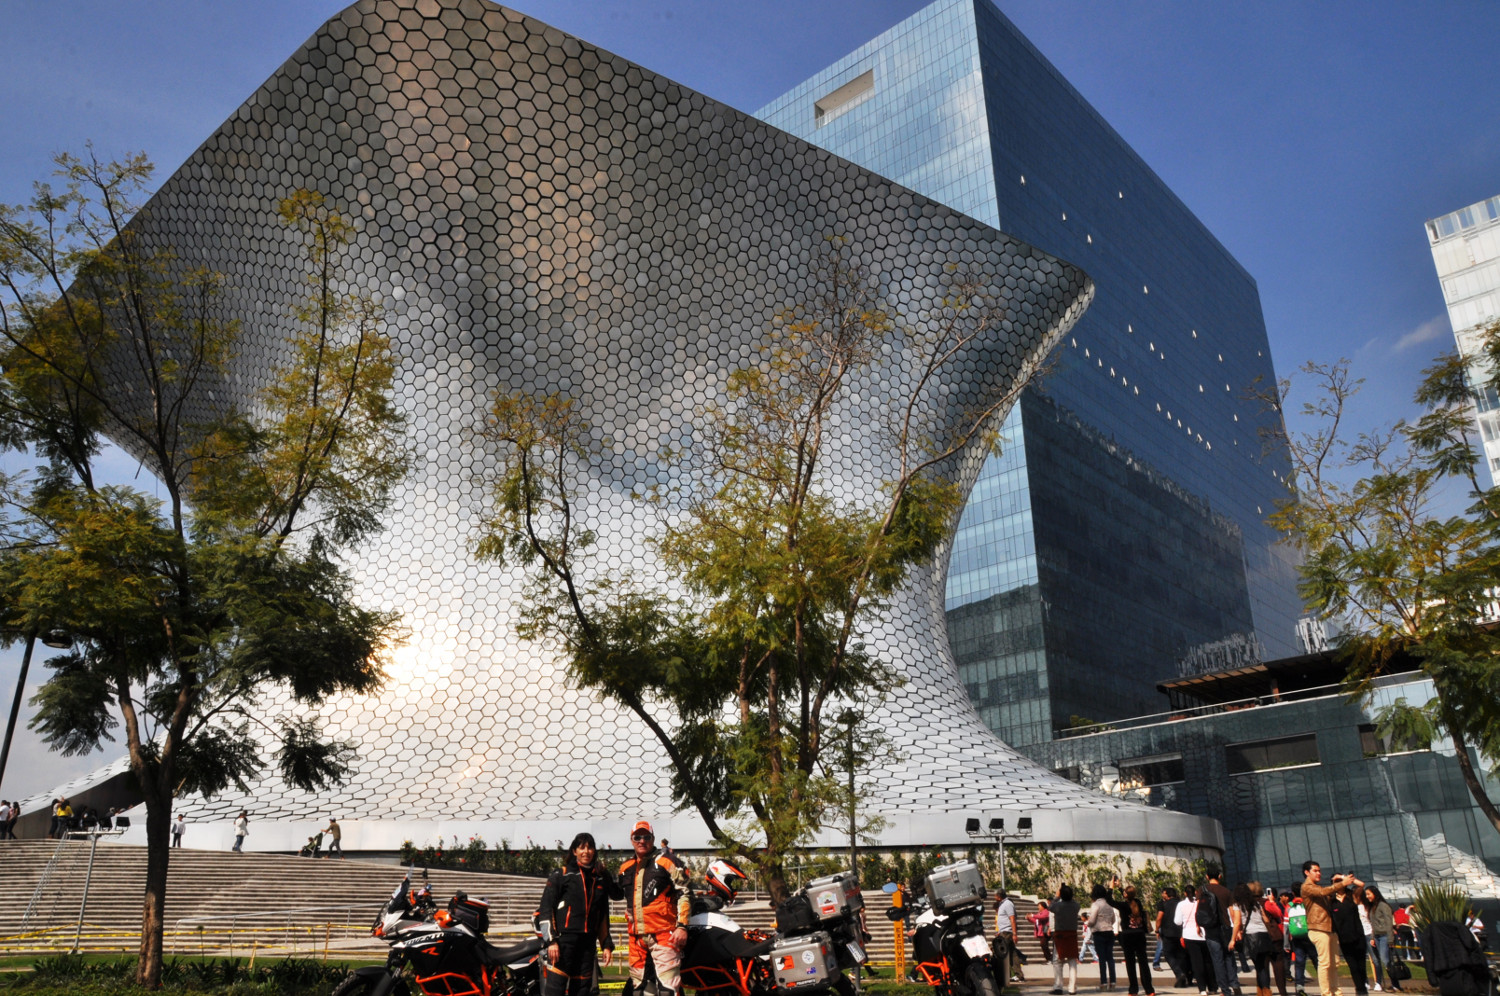 Im Zentrum von Mexiko City: Kunstmuseum Soumaya | Mexico City center: Museo Soumaya art museum